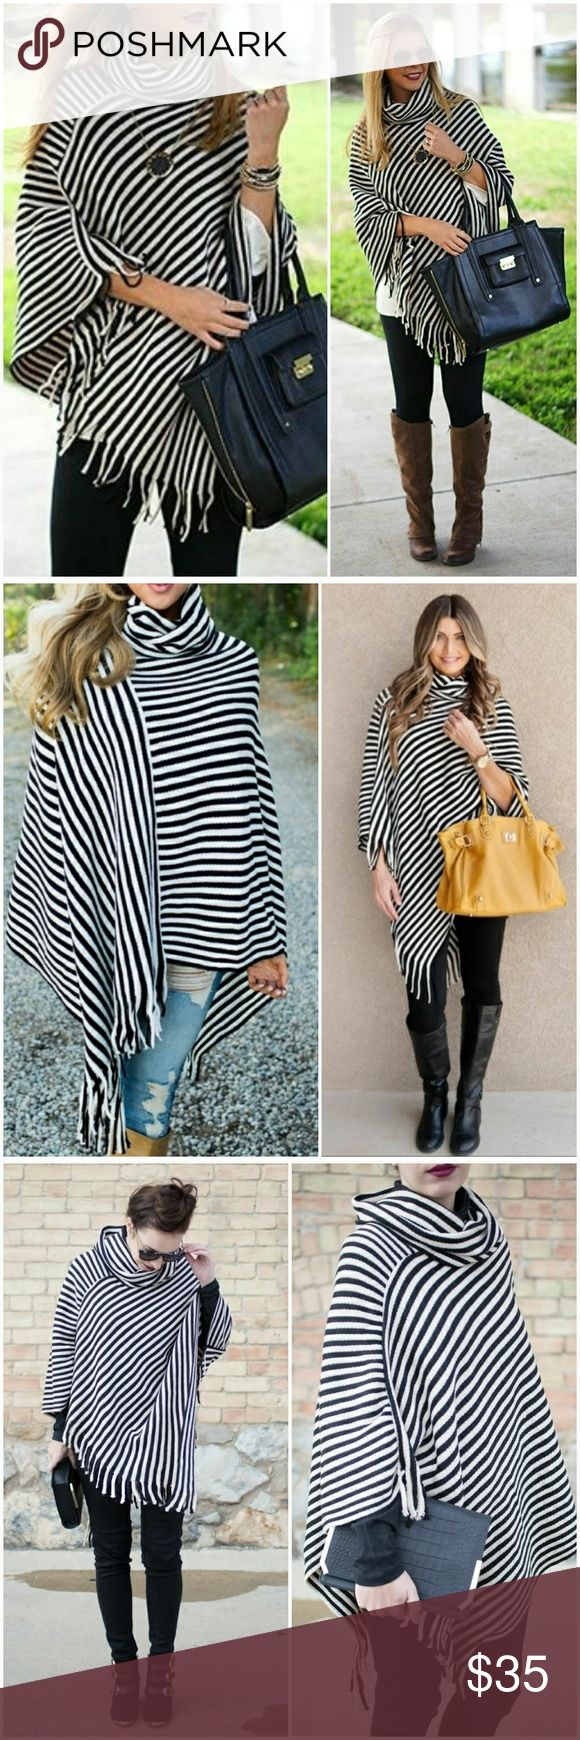 •Just In• Striped Cowl Neck Poncho Super cute black and white striped knitted poncho with cowl neck and partial fringe bottom. 100% Acrylic  CZ1SFSWBK100317 AJ's Threads Sweaters Shrugs & Ponchos